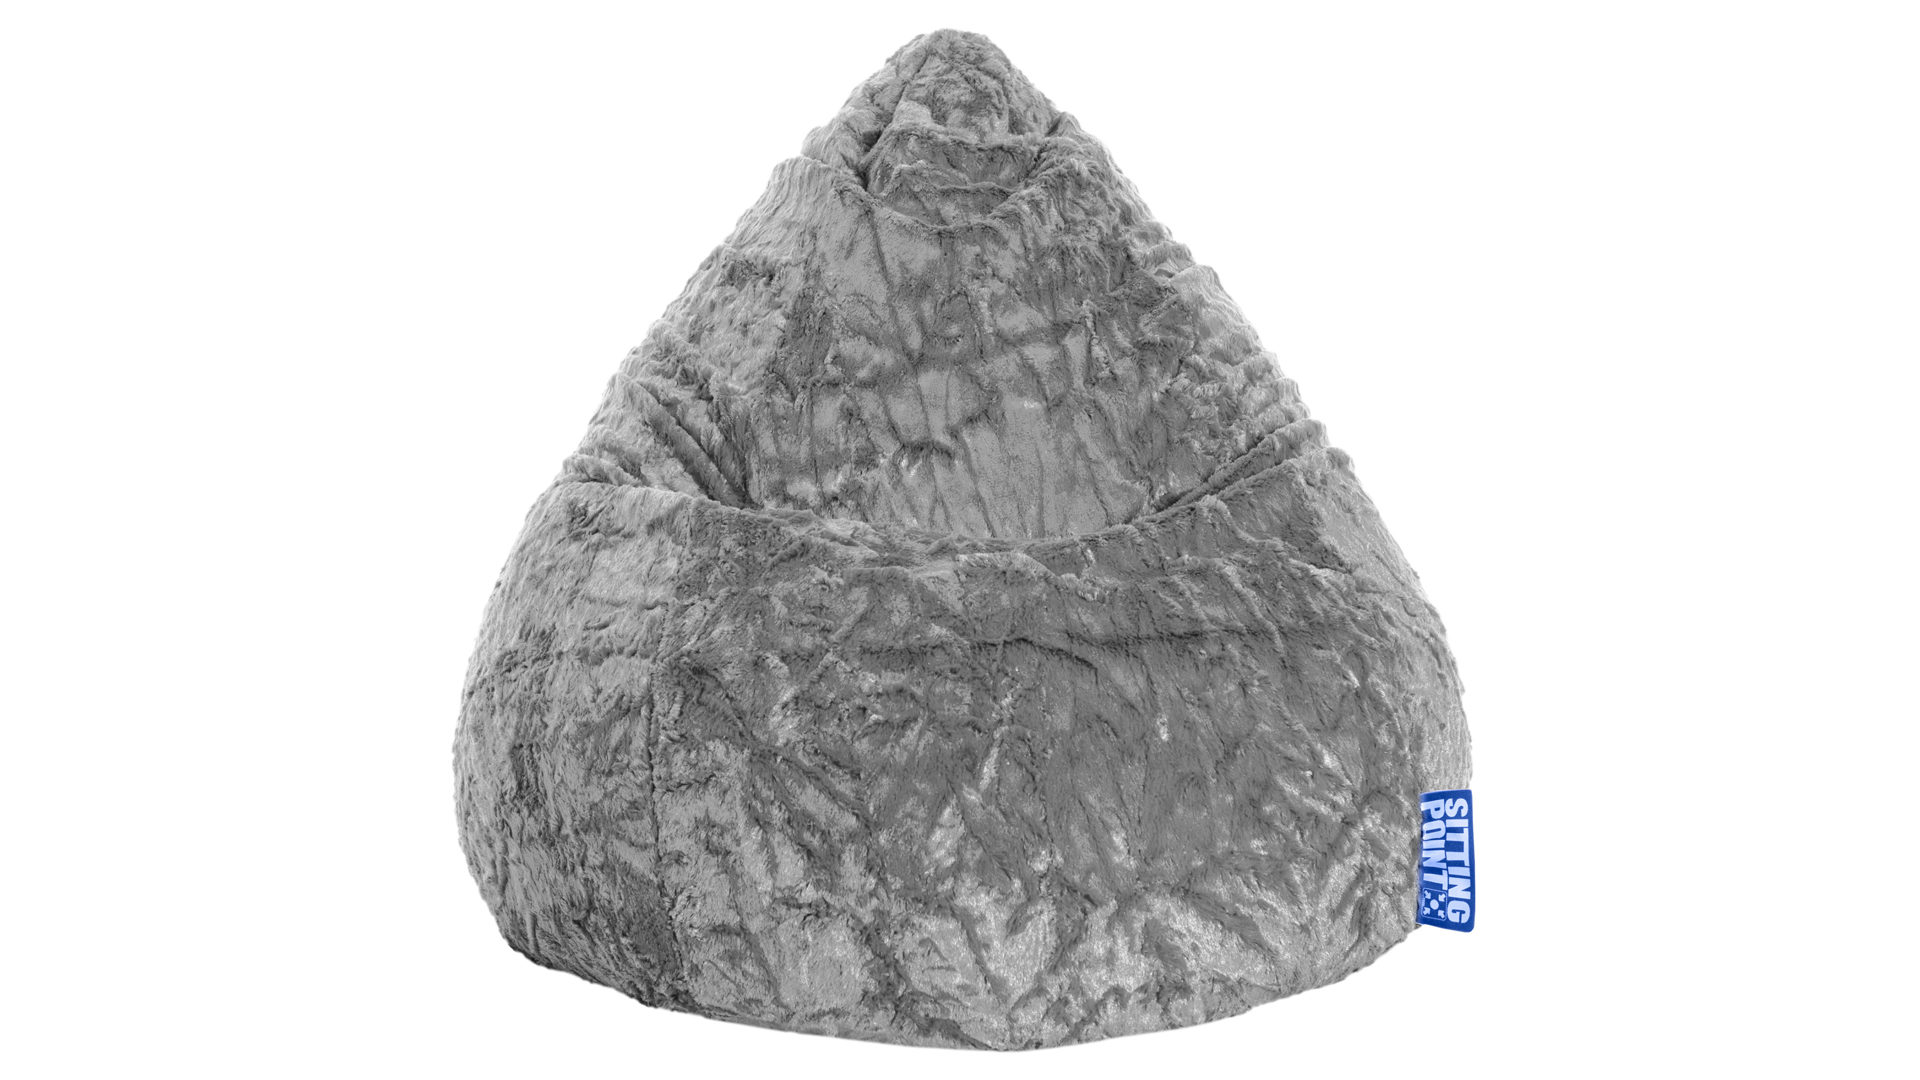 Standard-Sitzsack Magma sitting point aus Stoff in Grau SITTING POINT Plüsch-Sitzsack Fluffy XL als Sitzmöbel hellgrauer Plüschbezug - ca. 220 Liter